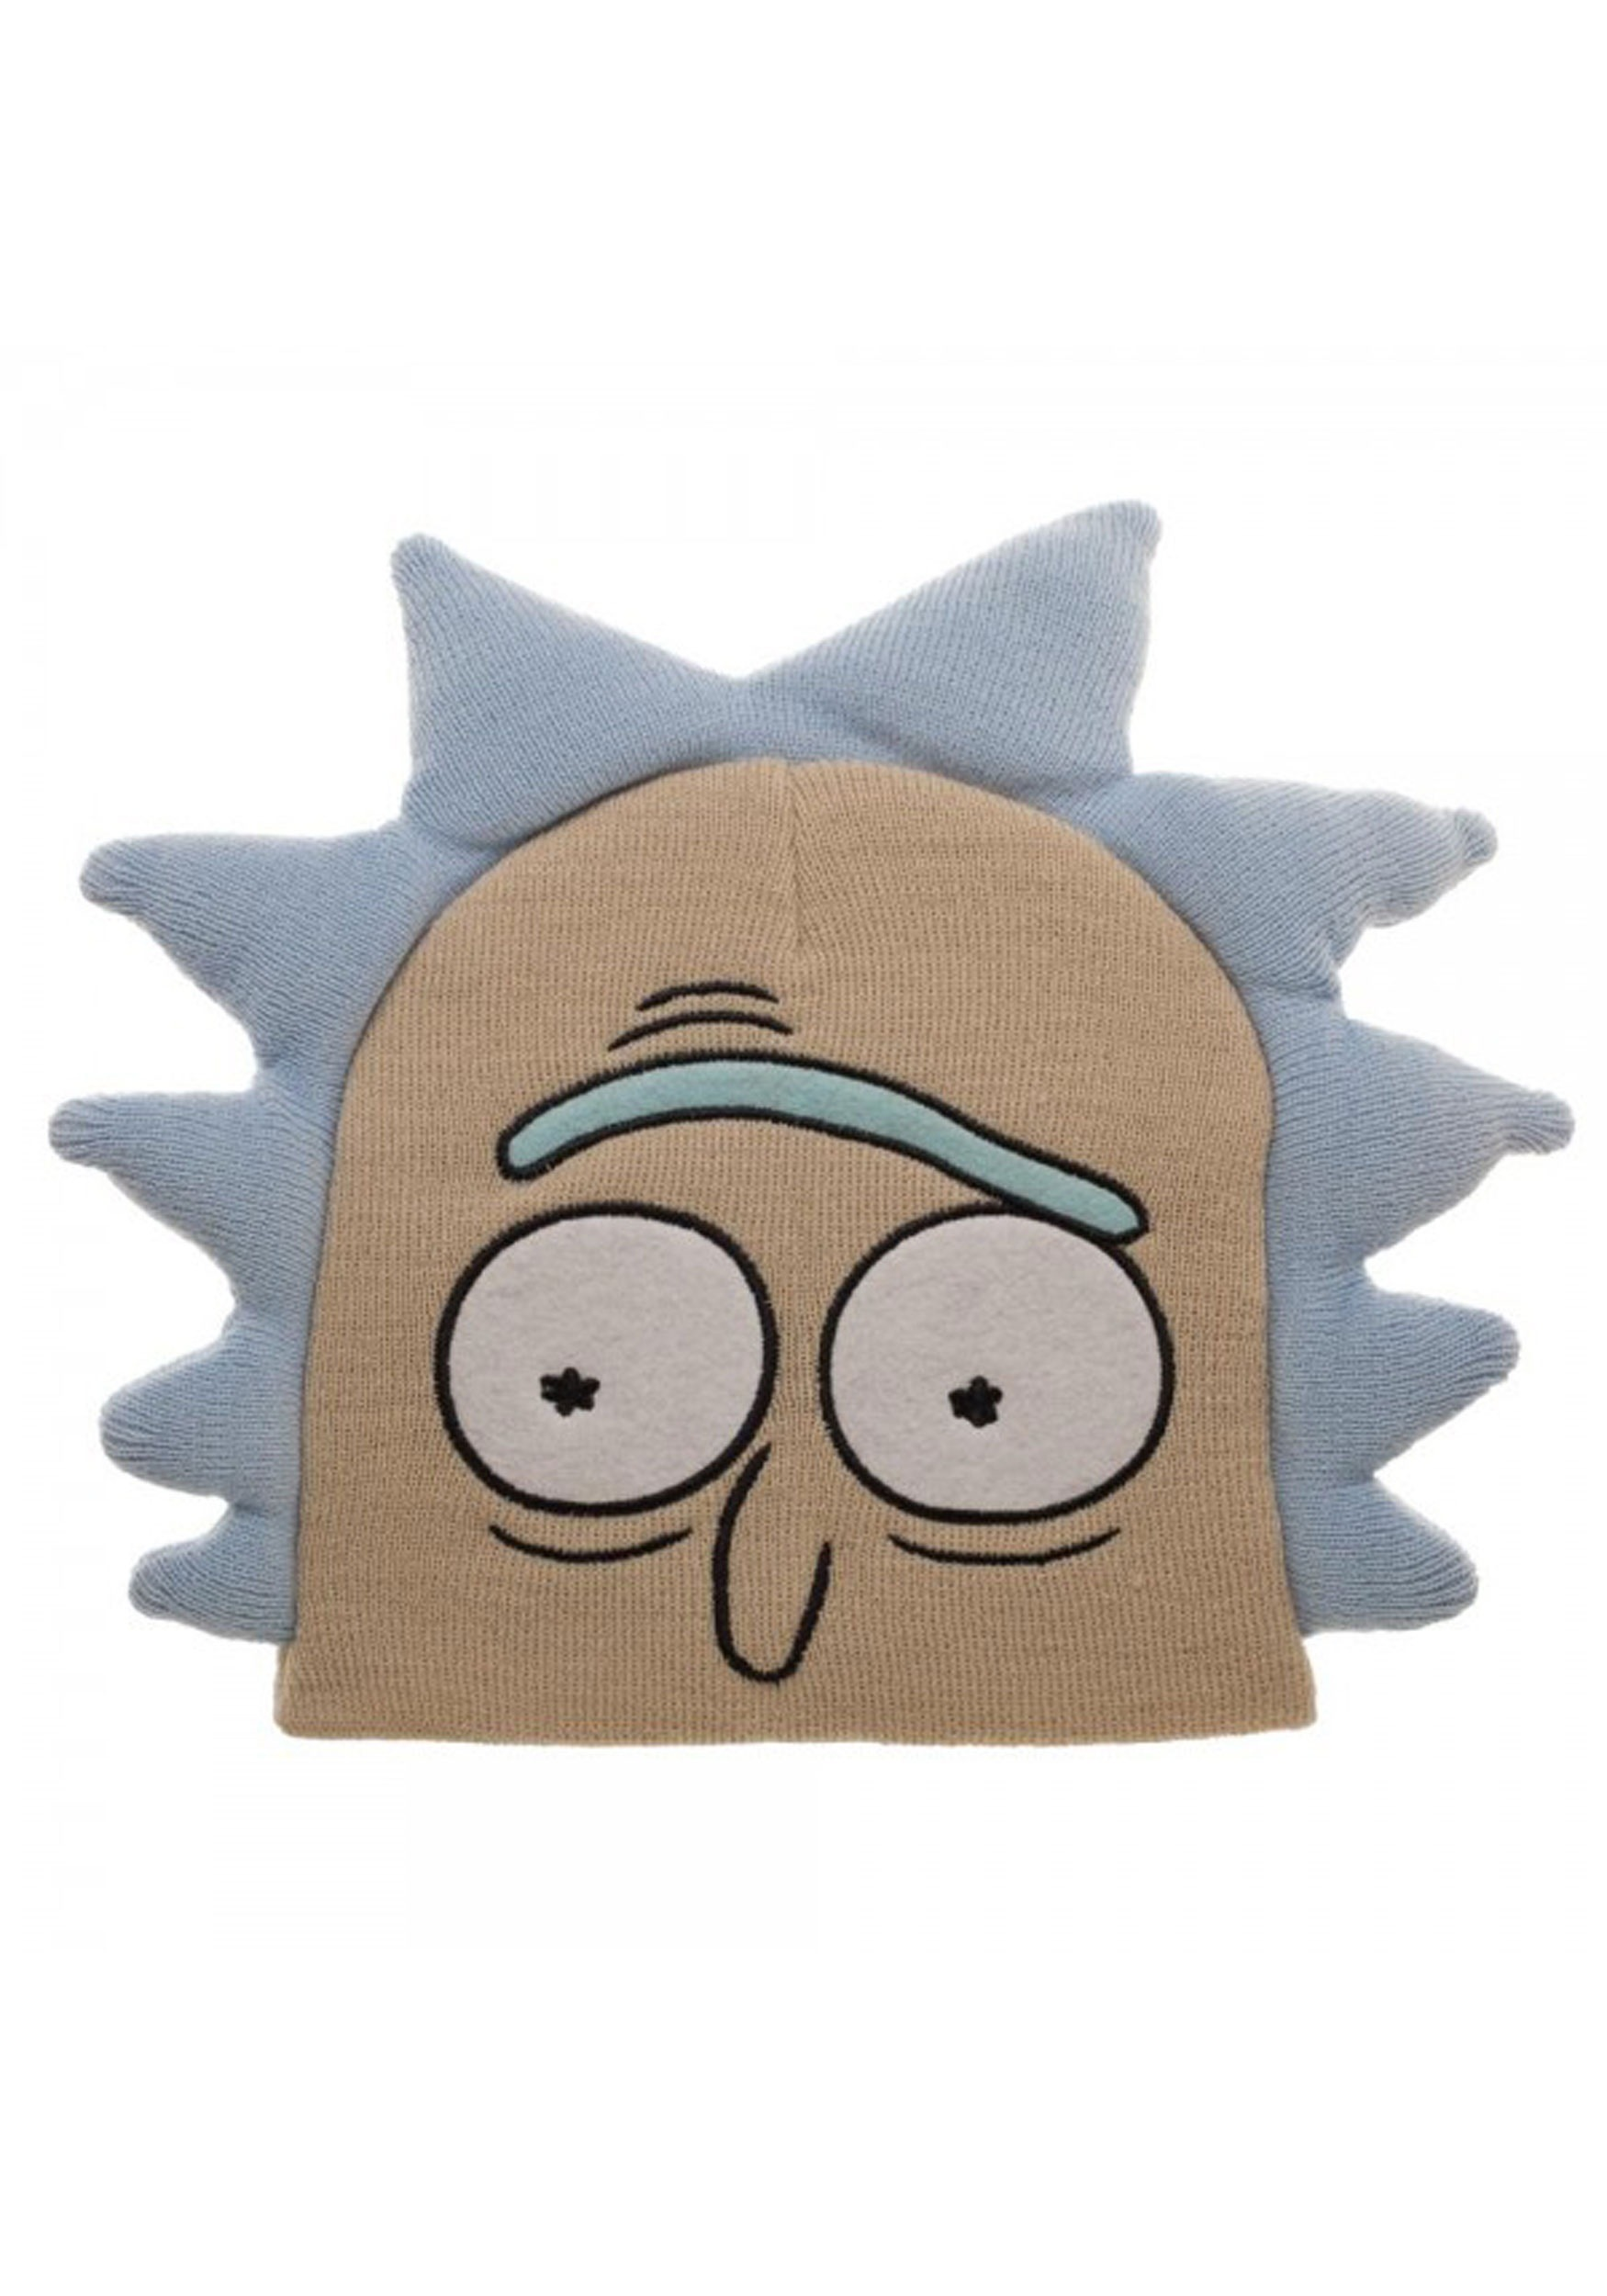 0c9676fd586e28 The Rick and Morty Rick Big Face Beanie